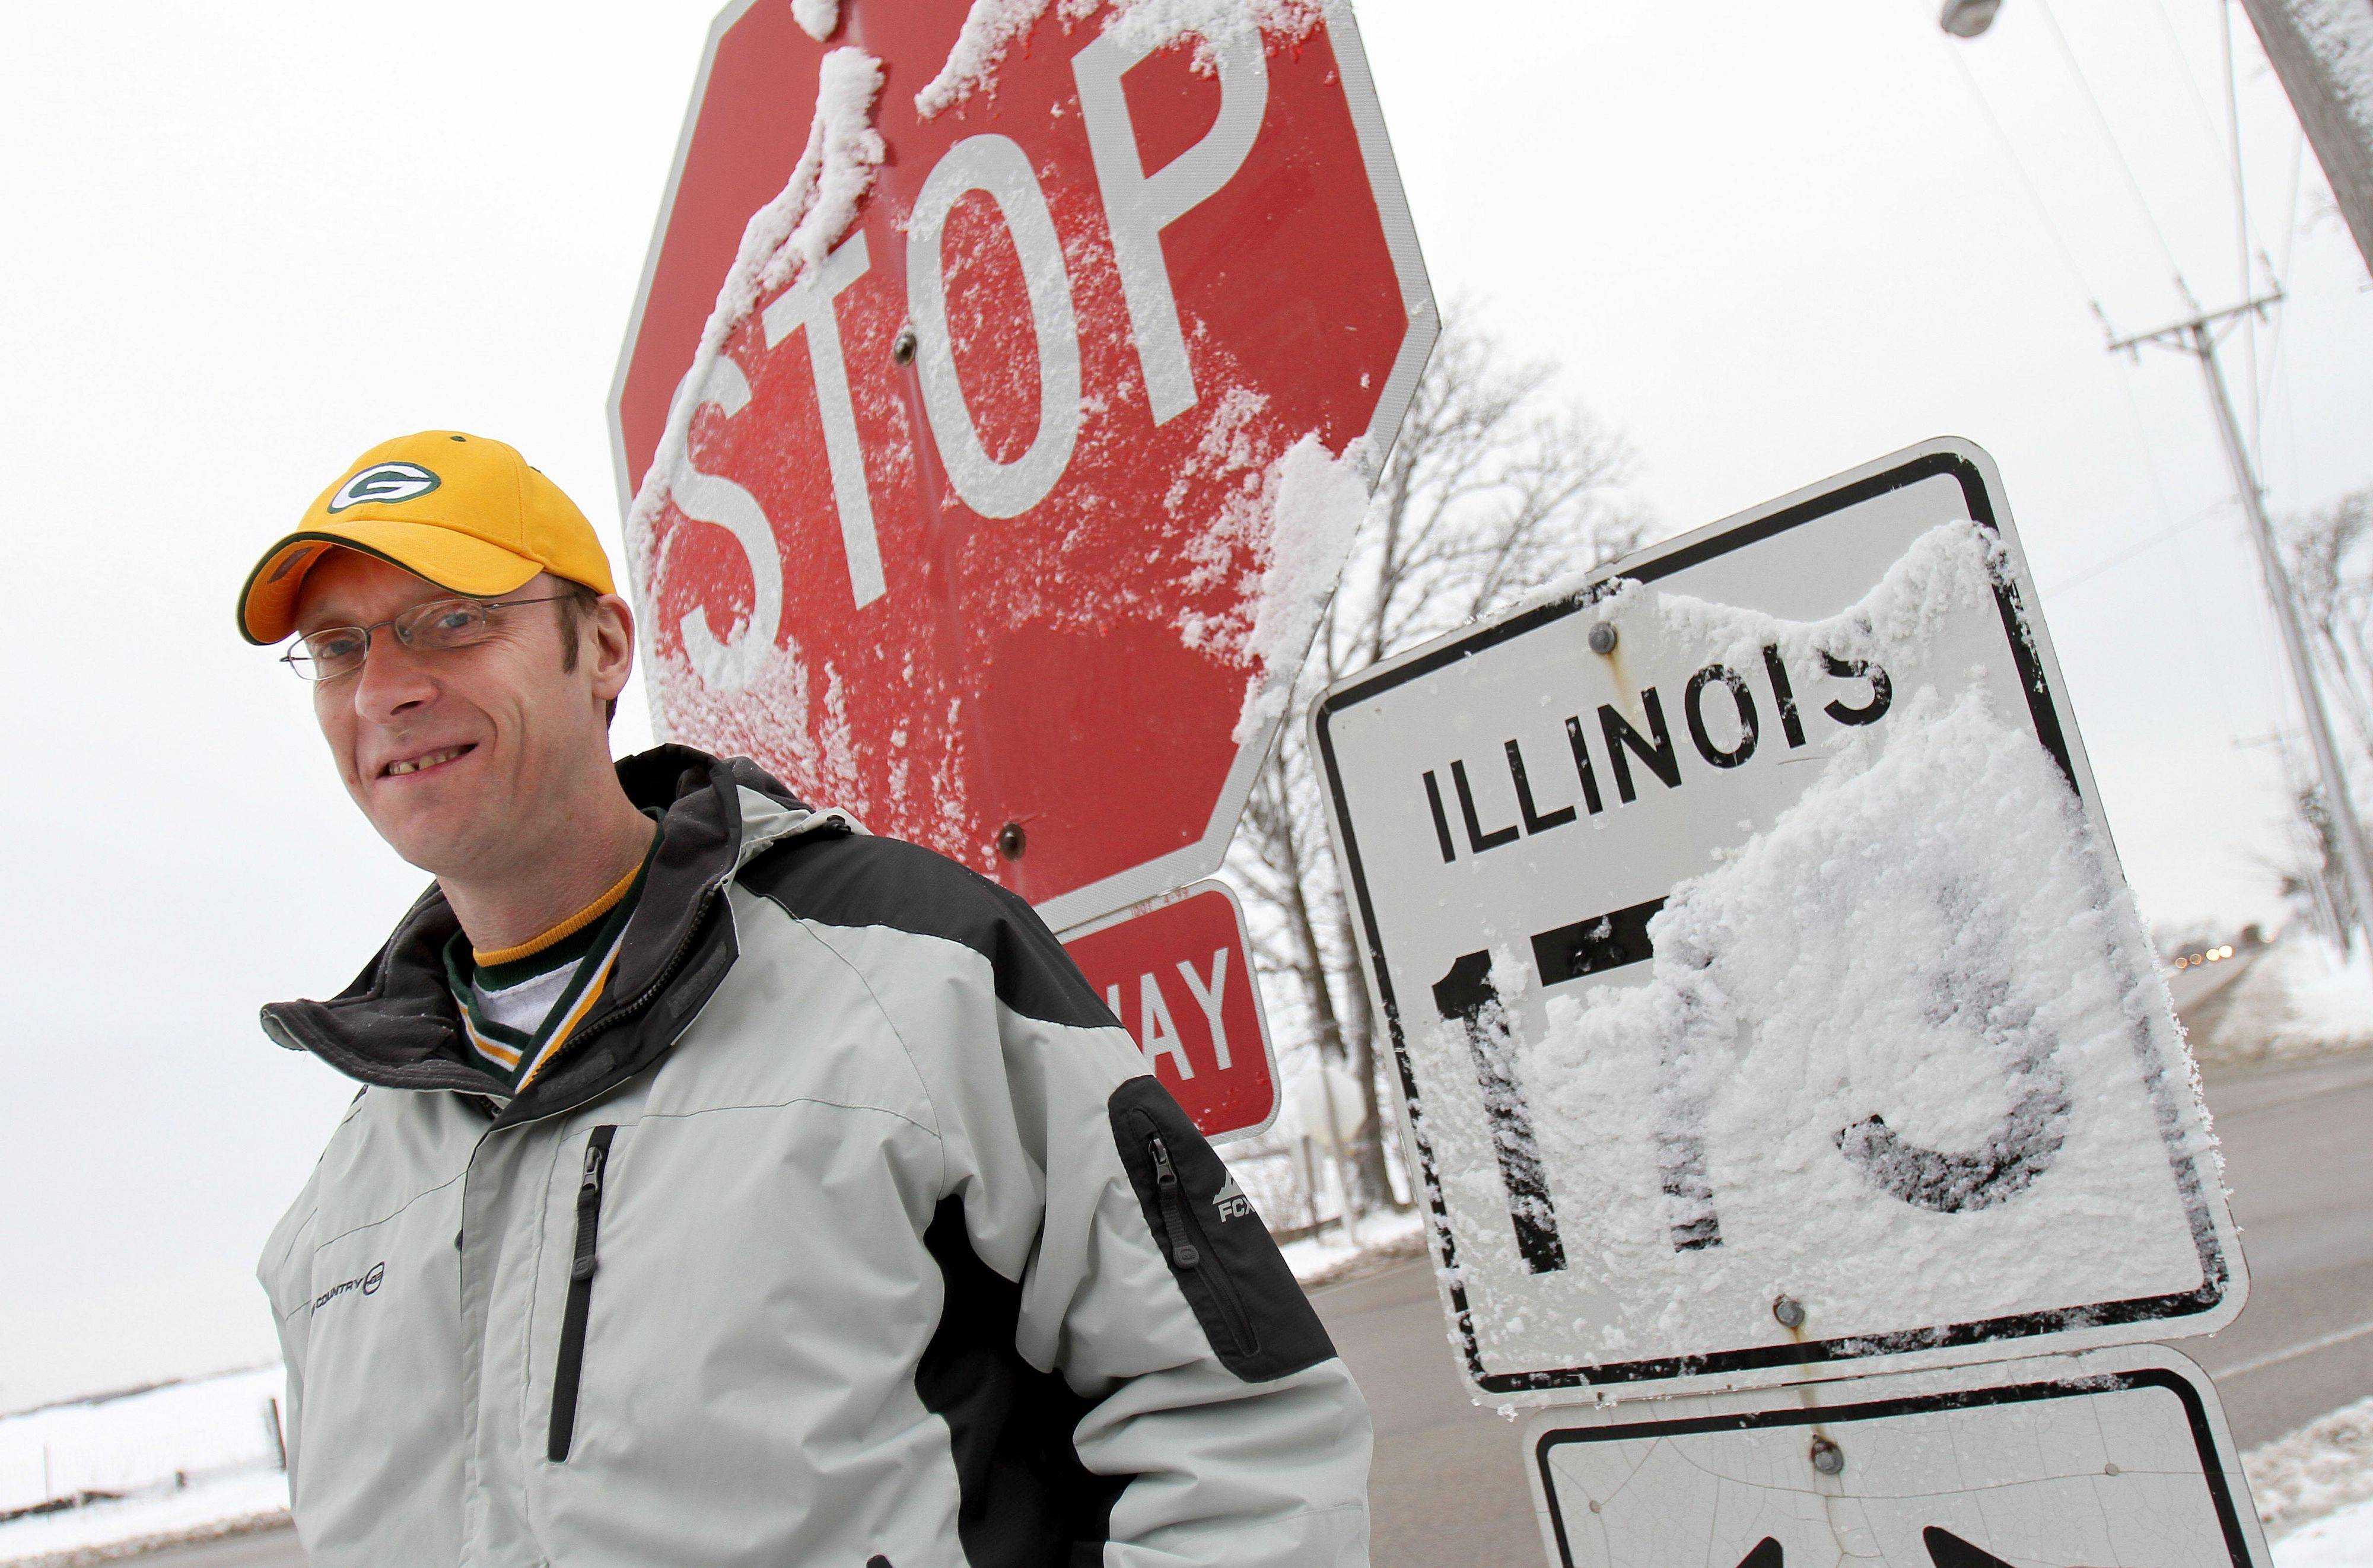 Few understand the Bears-Packers rivalry like John Cochara of Spring Grove. As a former bar manager for KC's Cabin in the town near the Wisconsin border, Cochara was duct-taped to a stop sign, above right, after the Packers beat the Bears 15 years ago.